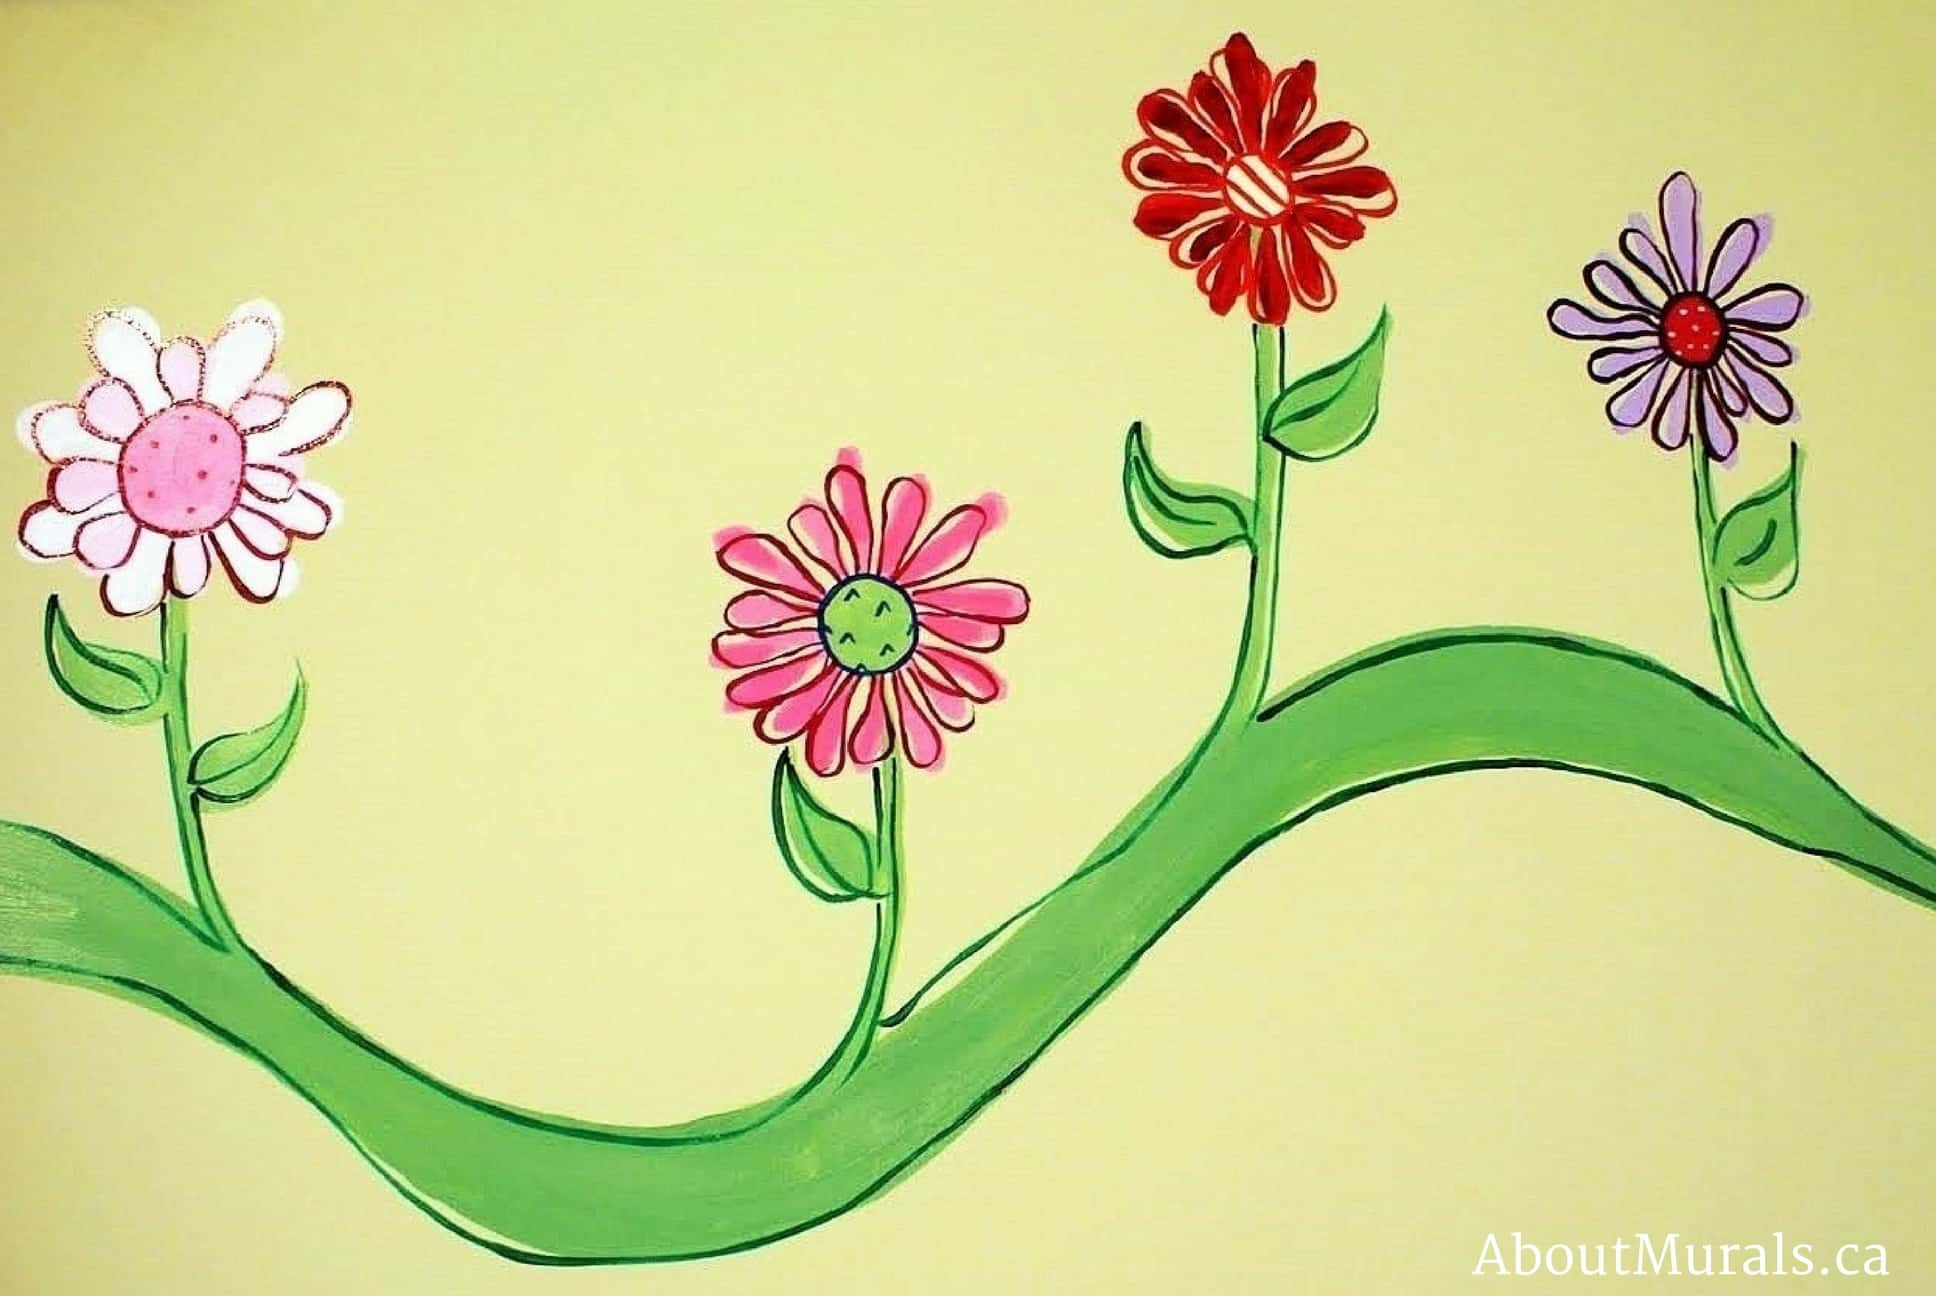 A pretty flower mural on a vine painted by Adrienne of AboutMurals.ca